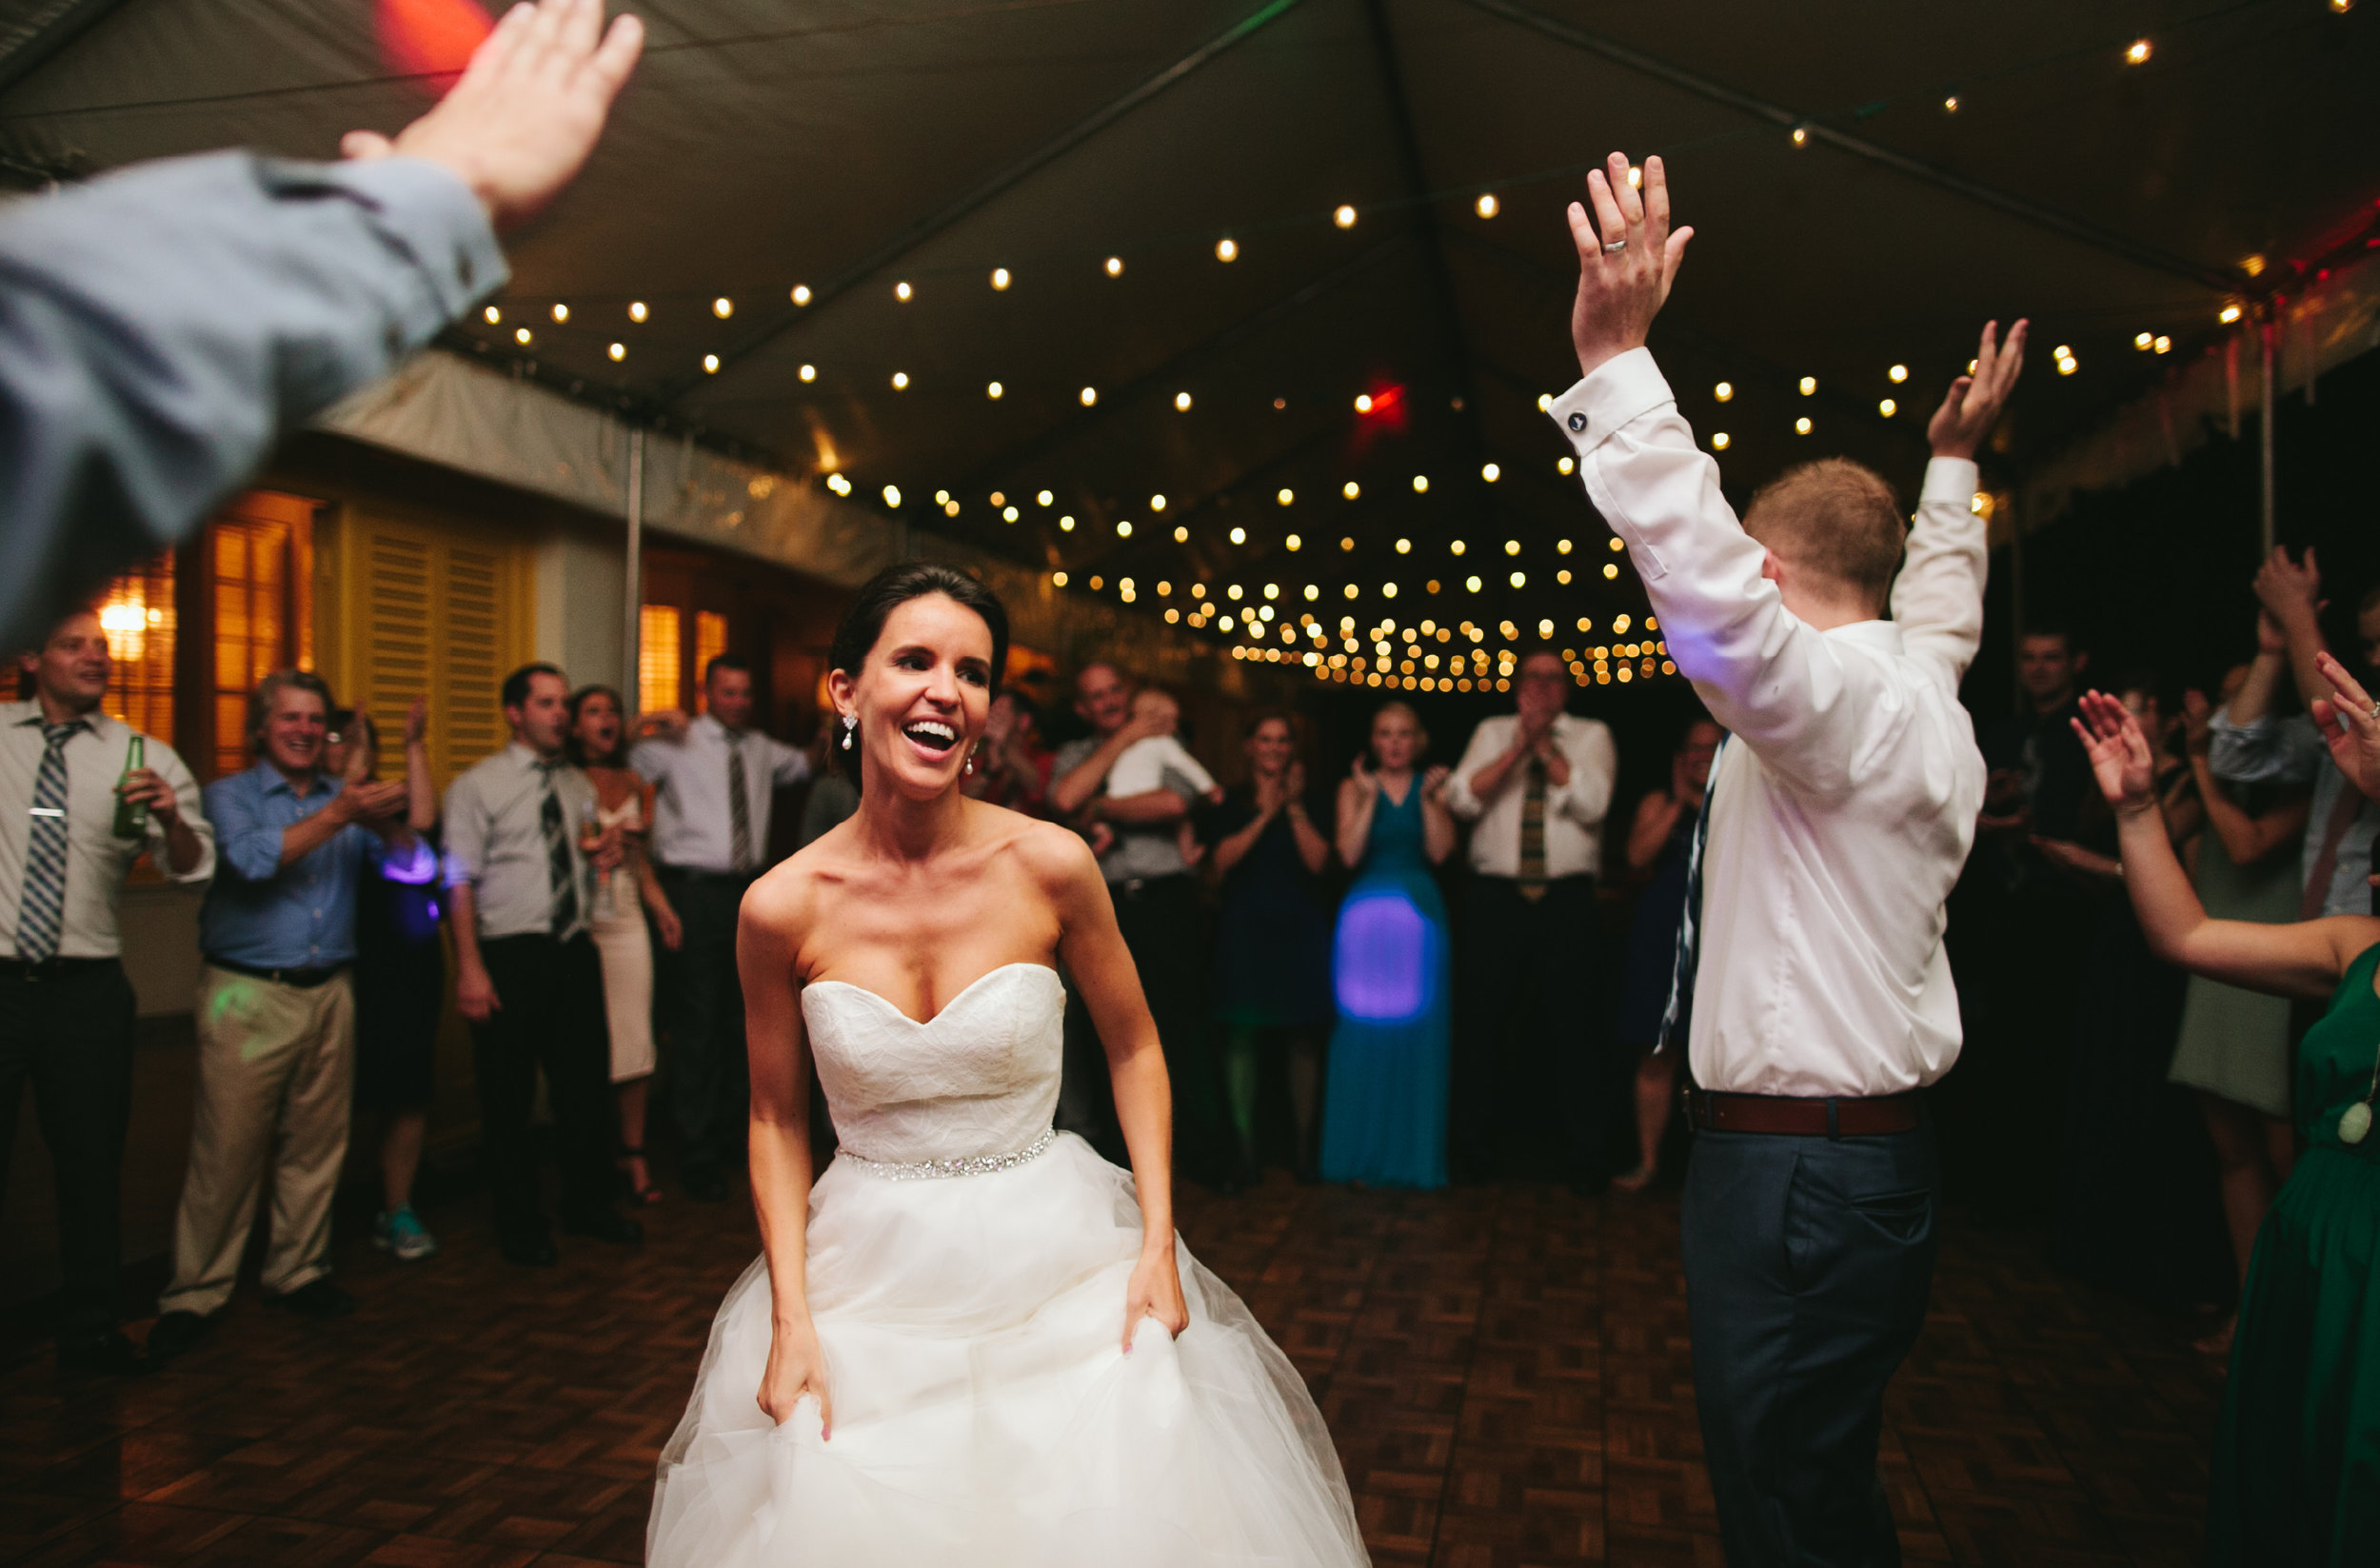 Heather + Greg's Wedding at the Bonnet House Ft Lauderdale94.jpg